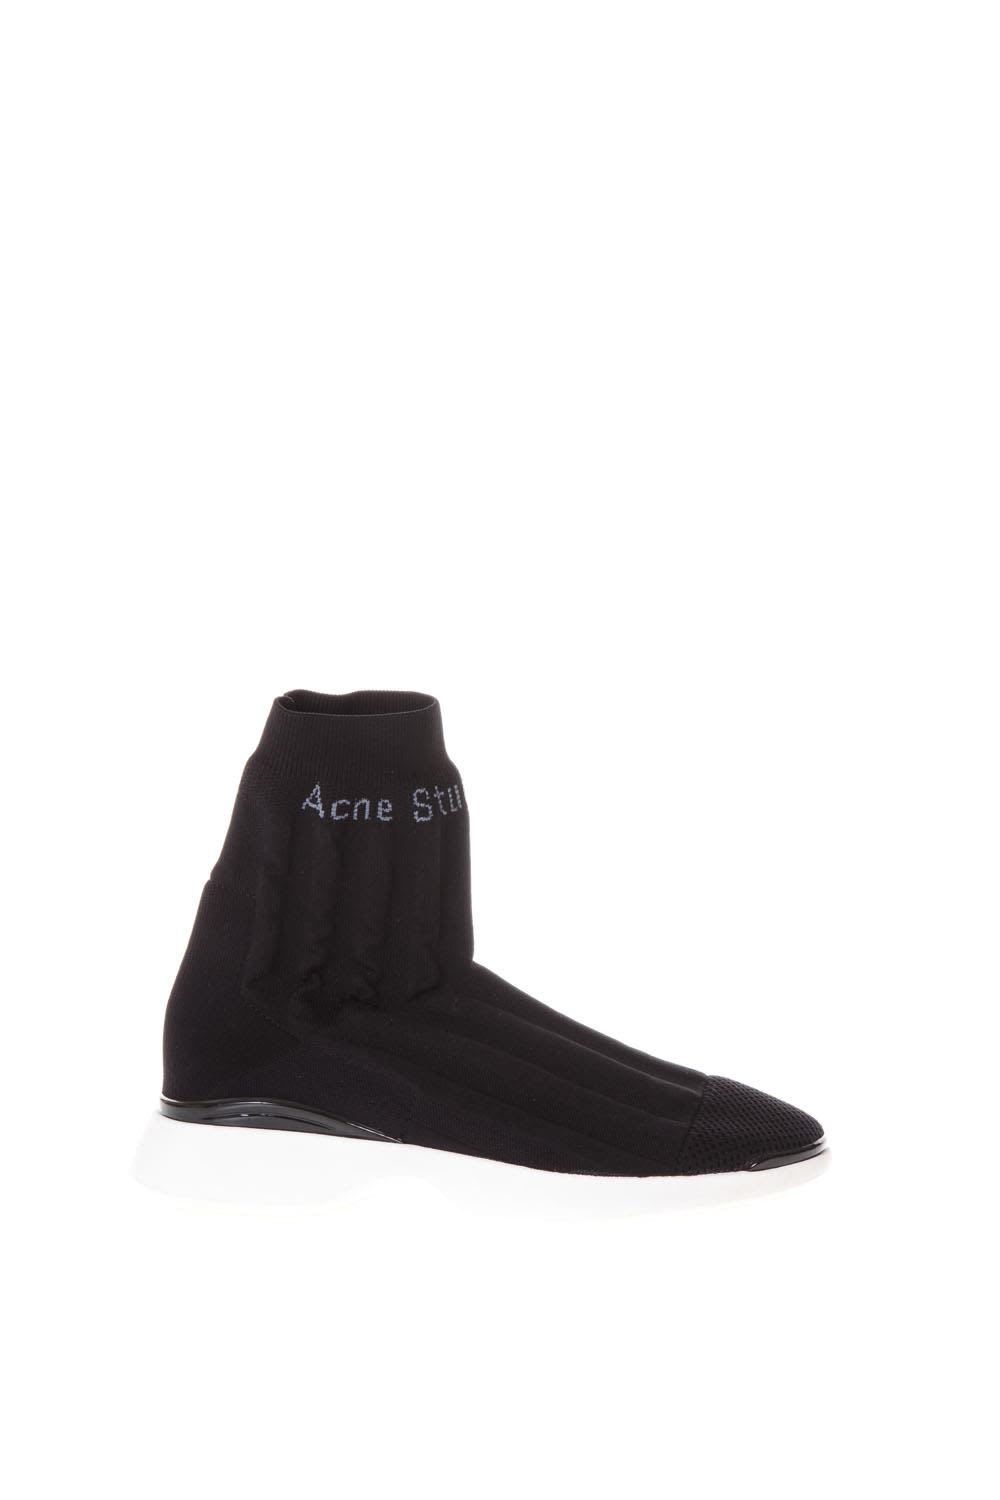 Acne Batilda Sock Sneakers In Nyloon Latest Collections Cheap Price Free Shipping For Sale Free Shipping Discount Cheap Top Quality eqAhH4j8TE